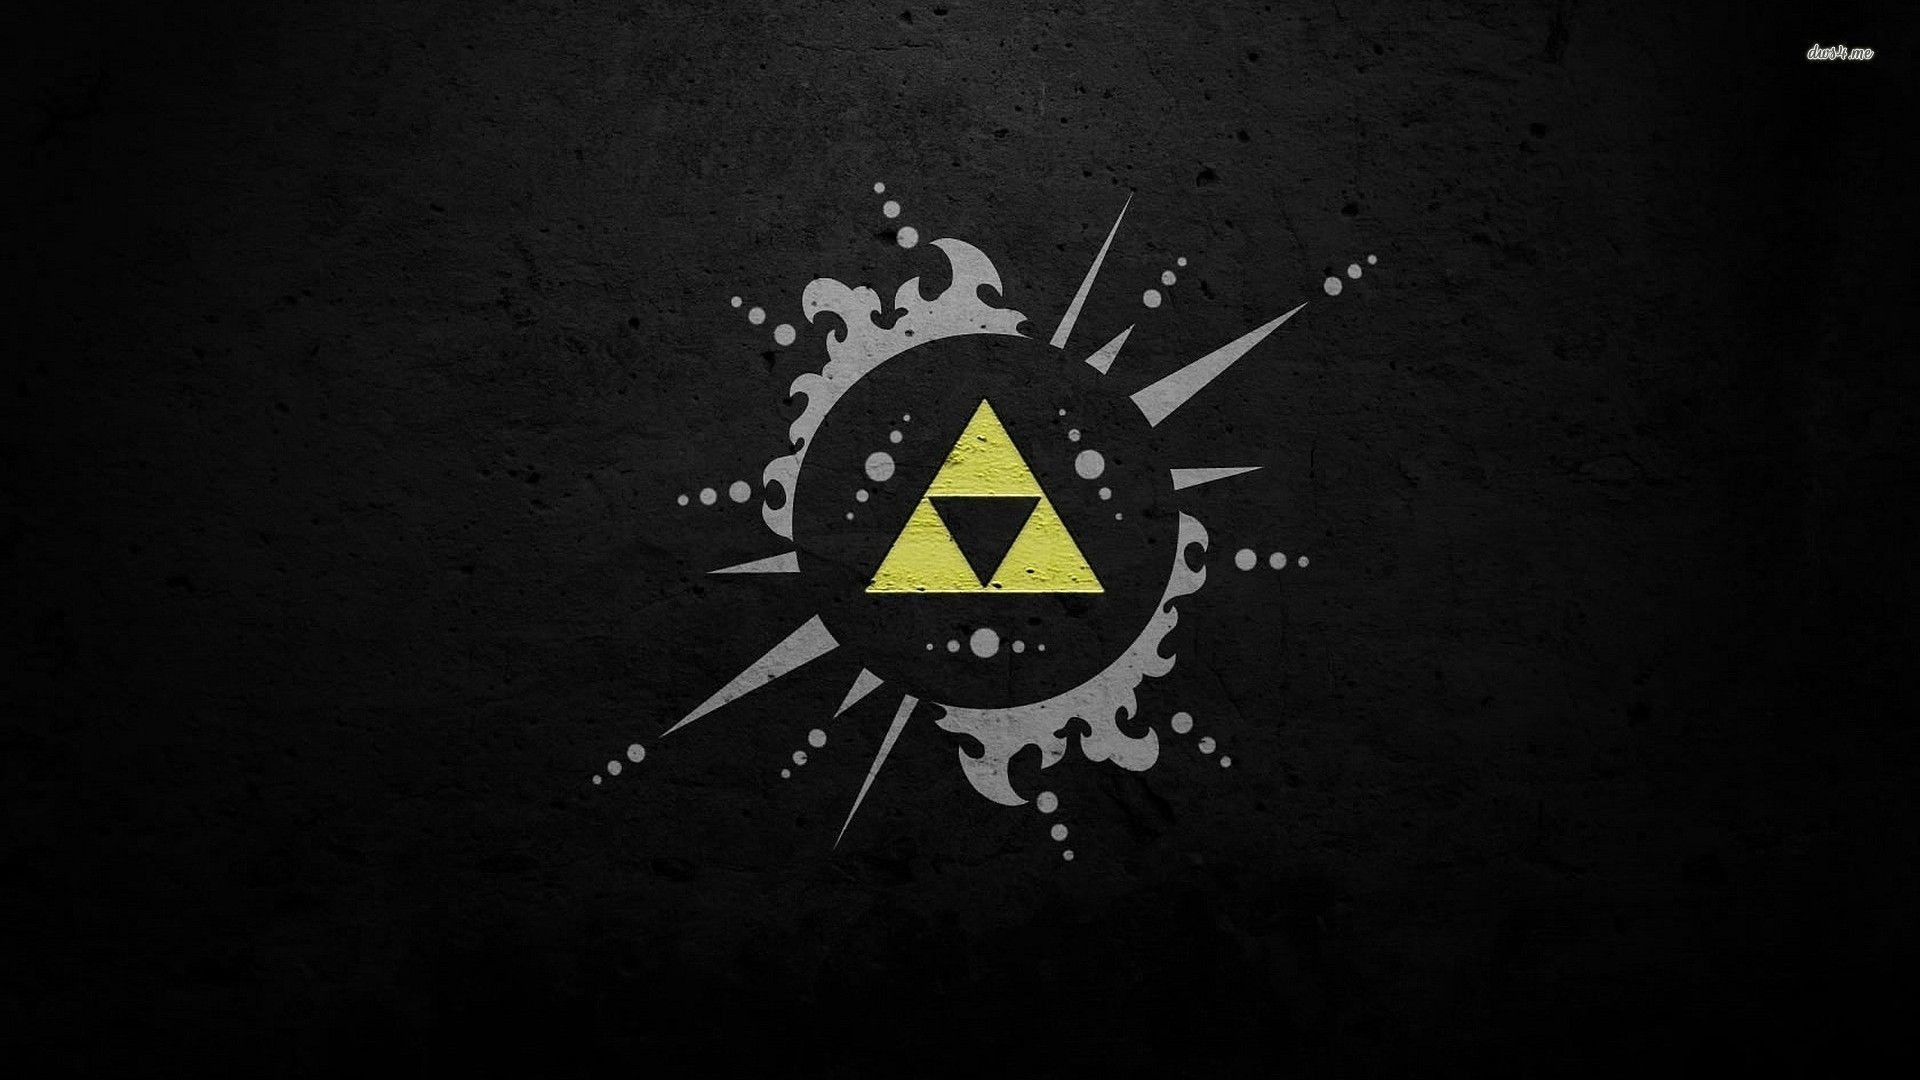 1920x1080 Zelda Wallpapers HD  - Wallpaper Cave